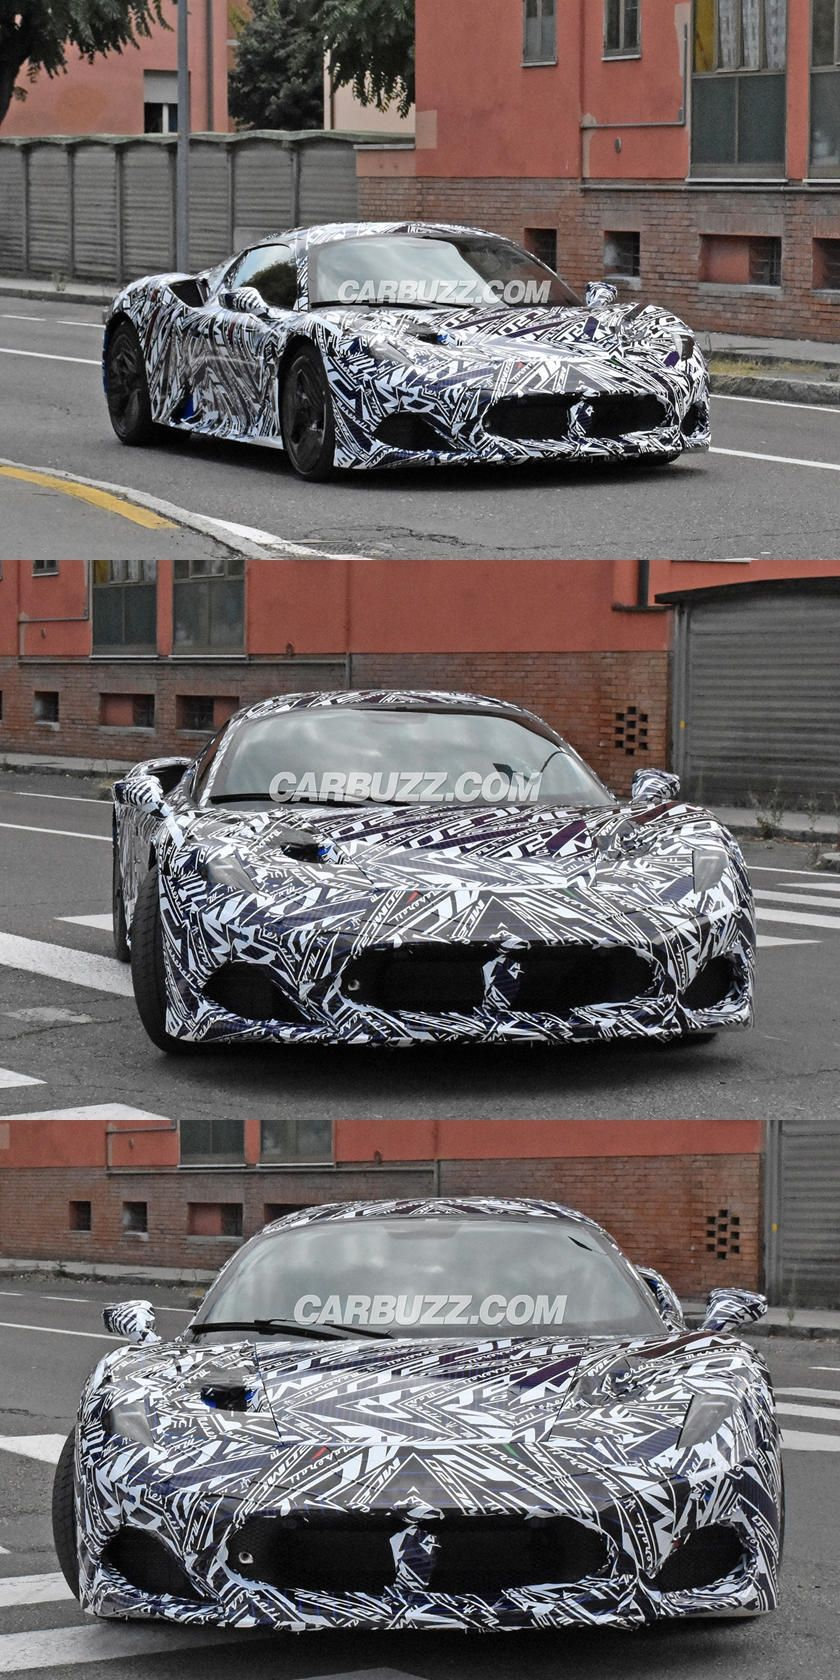 Maserati S New 620 Hp Supercar Looks Ready For Business Maserati S New Halo Supercar Will Debut On September 9 In 2020 Super Cars Maserati Twin Turbo